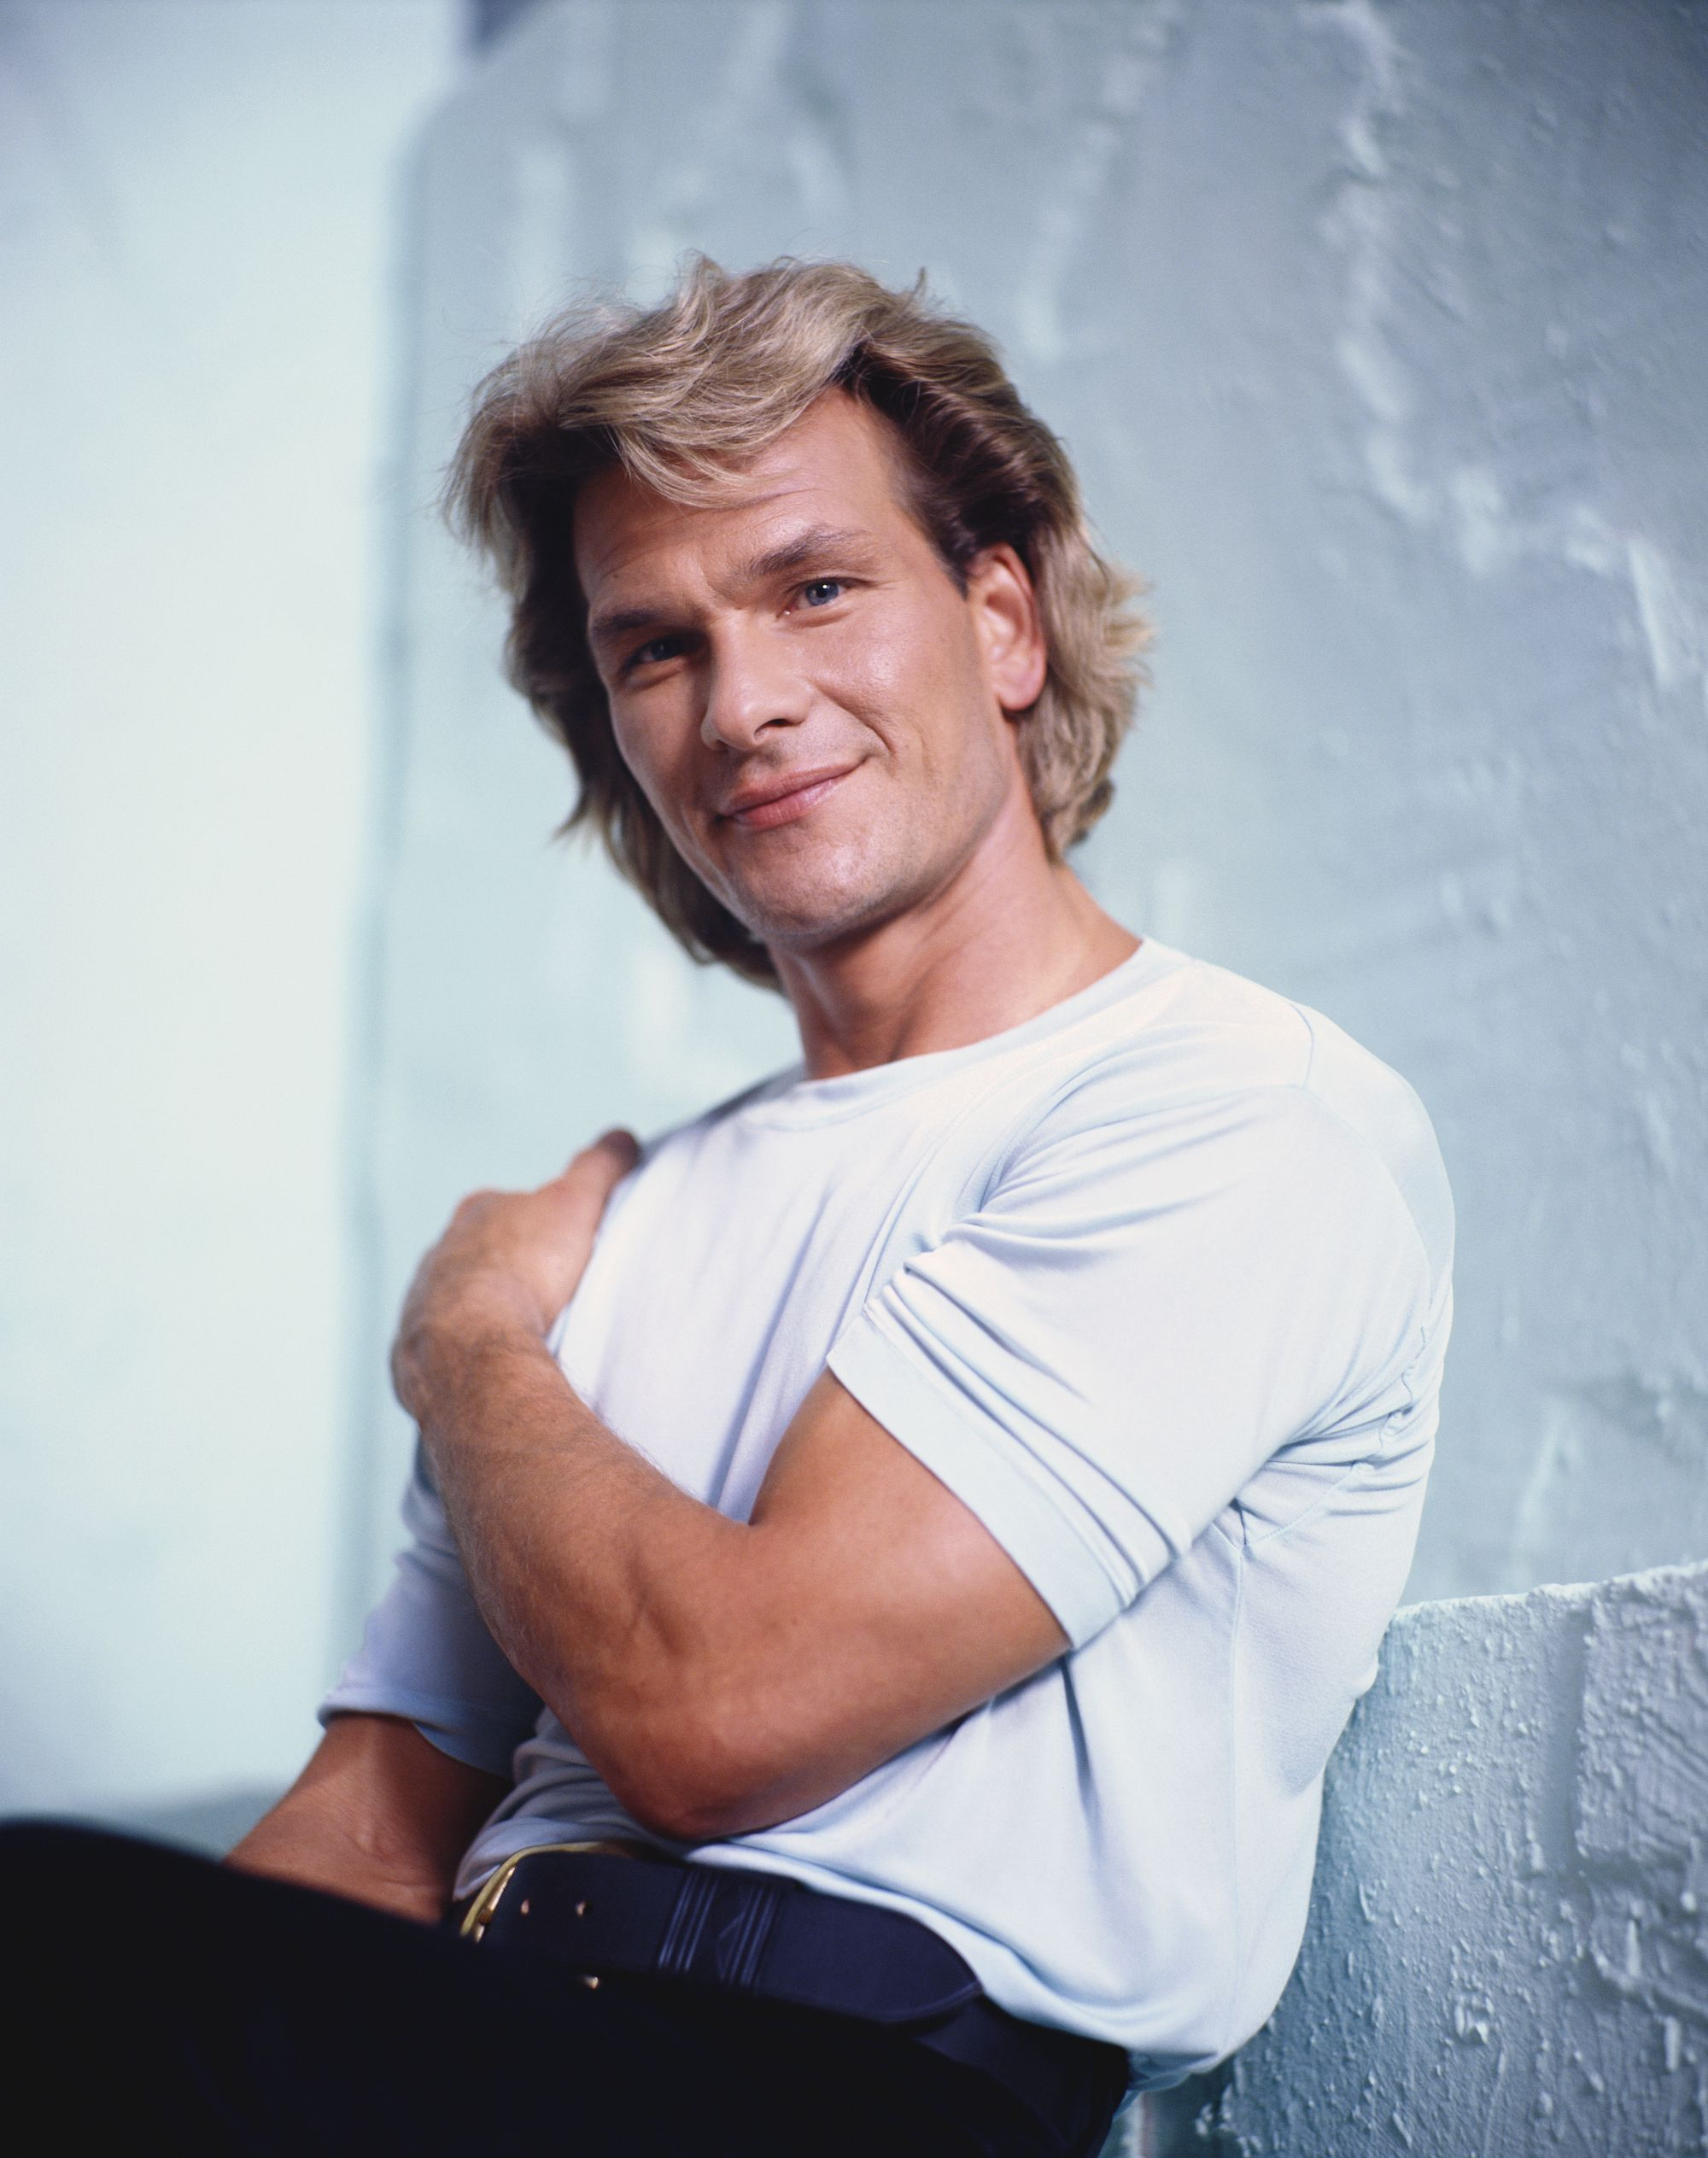 Patrick Swayze Was the First Man I Ever Loved. 10 Years After His Death I'm Still Grieving.